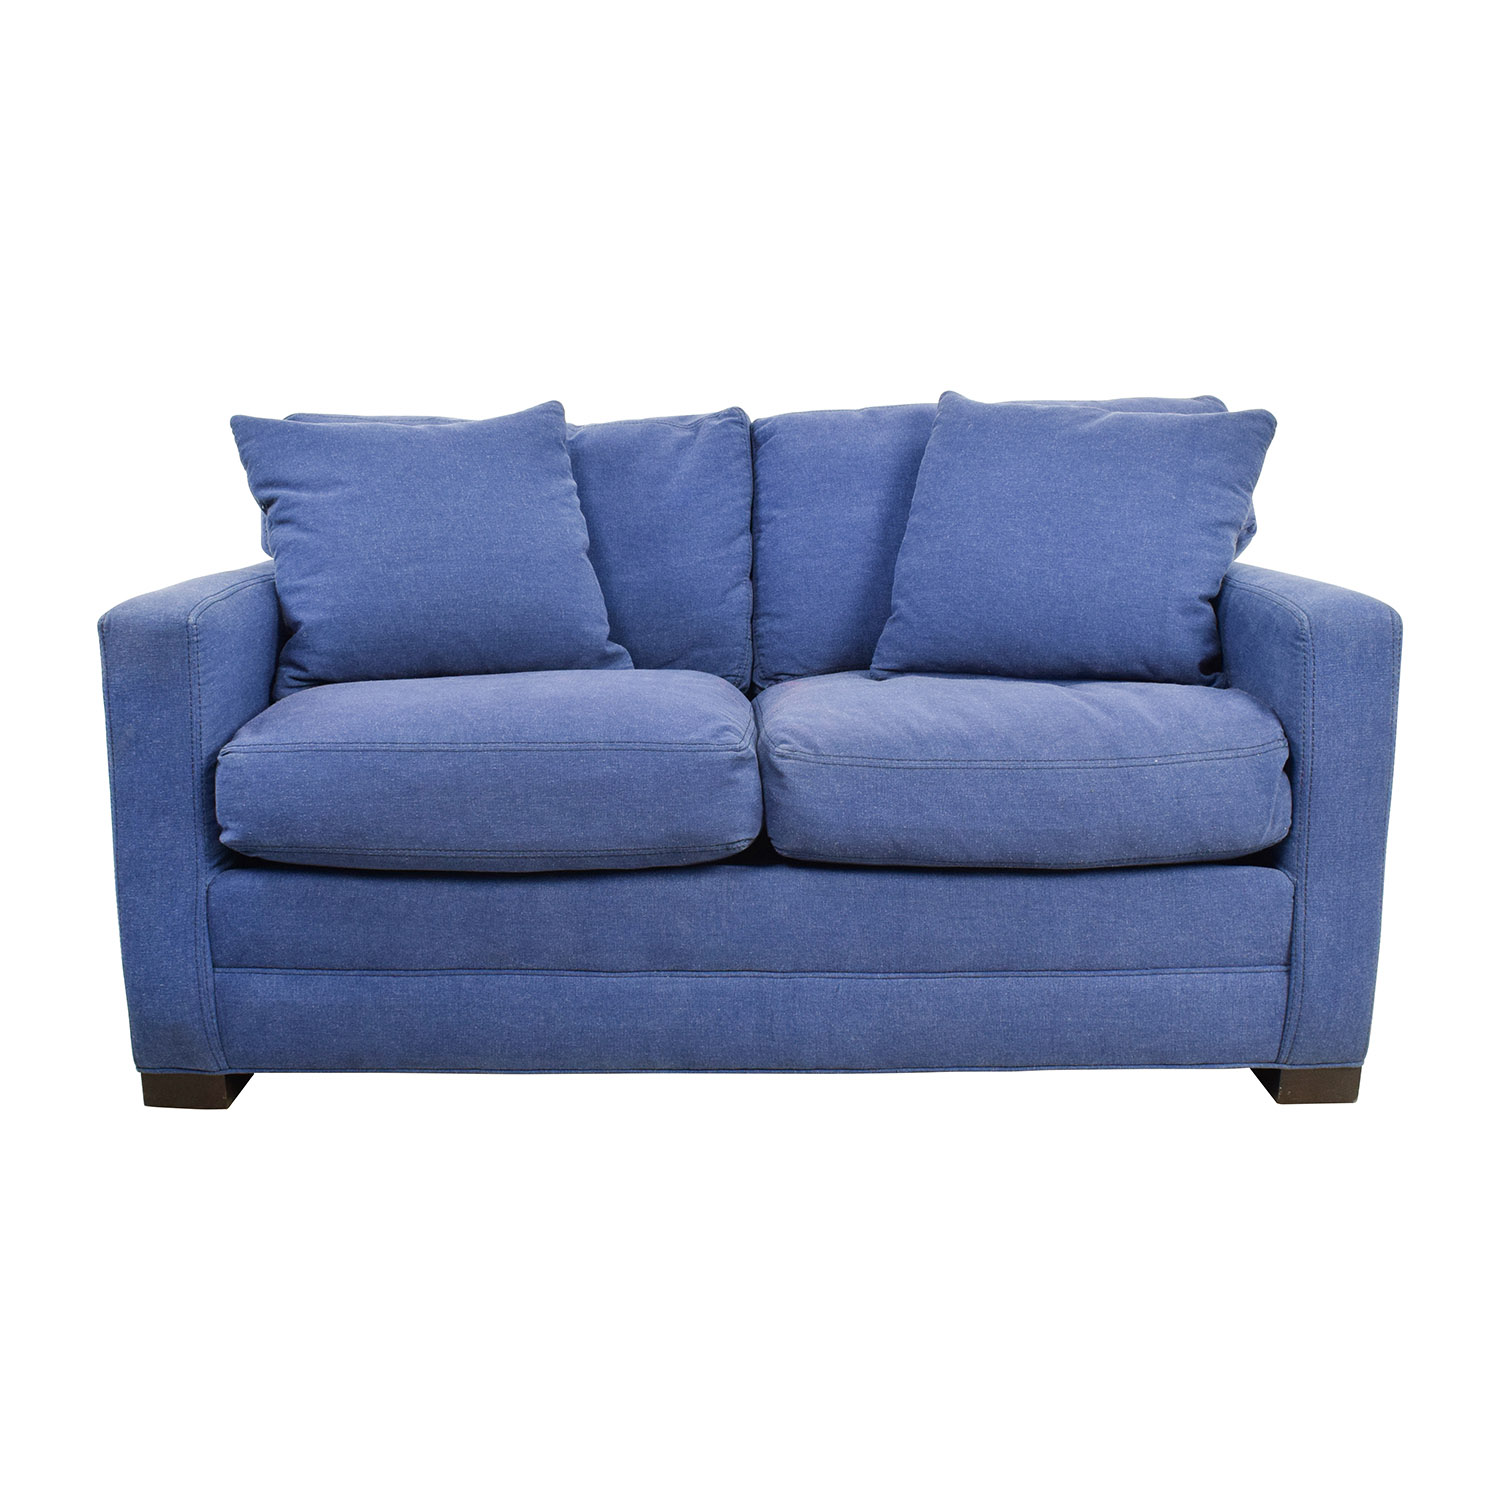 lee industries lee industries denim blue loveseat blue - Lee Industries Sofa